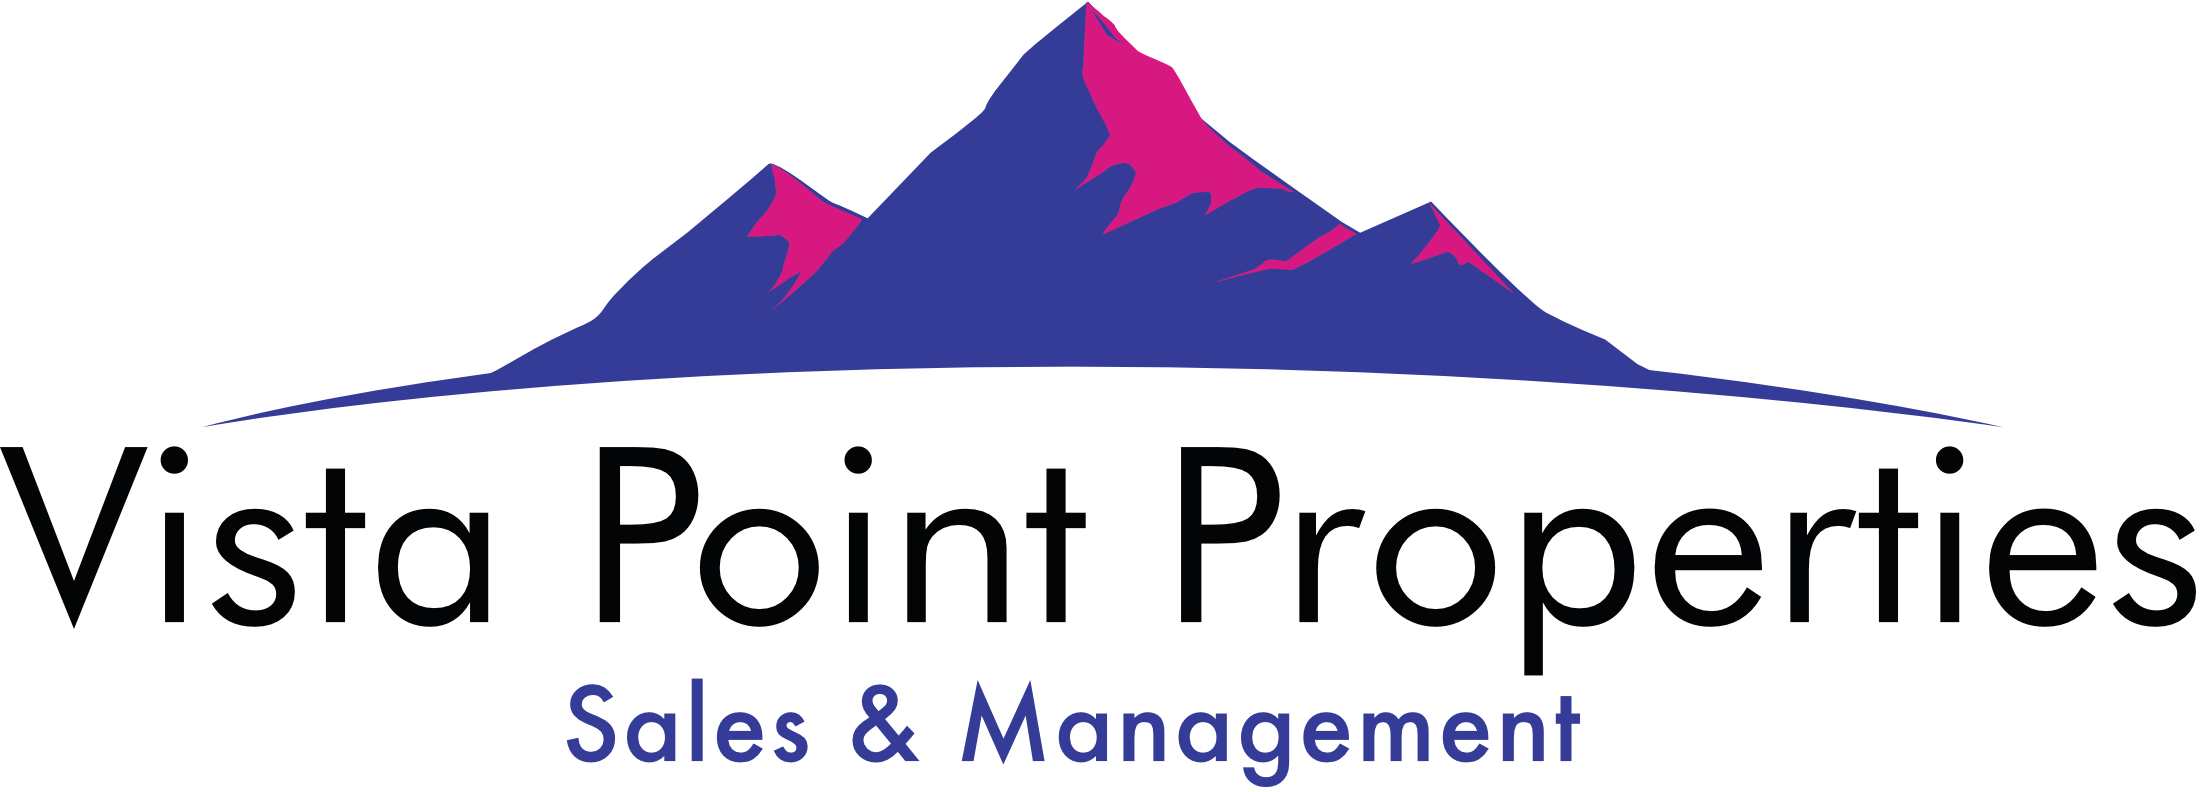 Vista Point Properties |   Listings for Sale